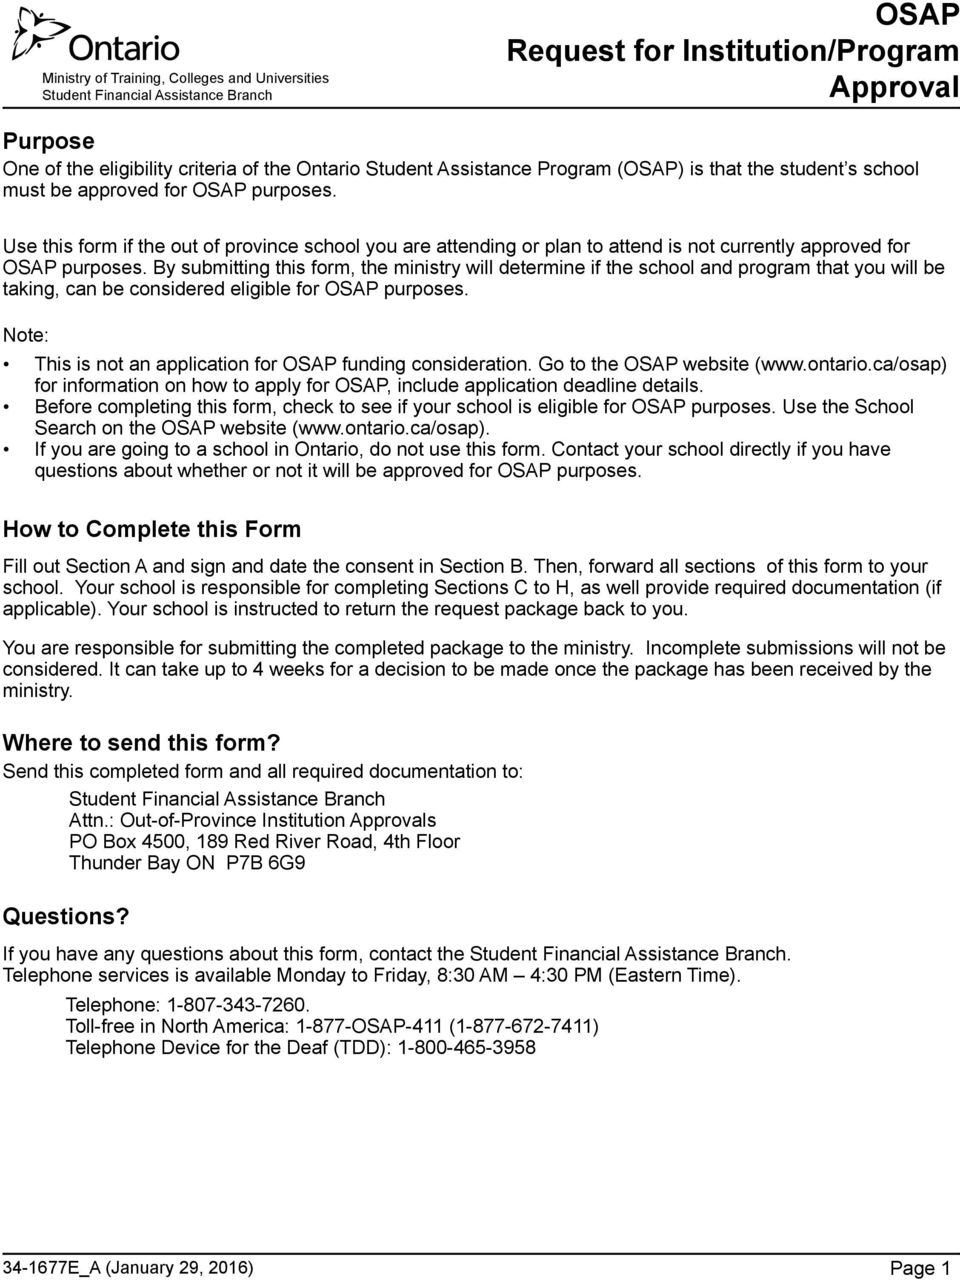 Osap Request For Institutionprogram Approval Pdf